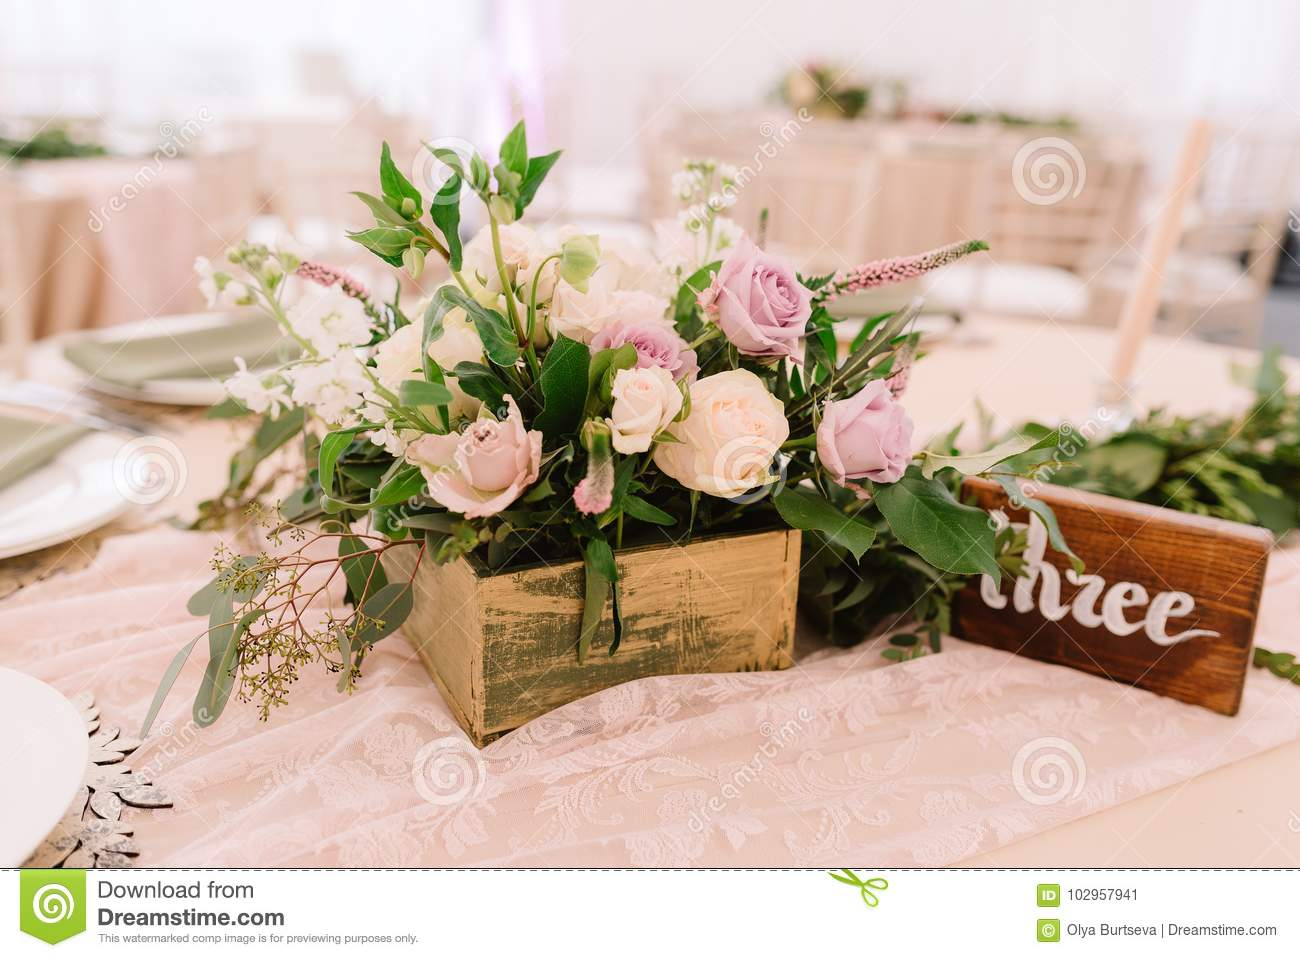 Wedding Table Decoration With Flowers In Rustic Style Stock Image